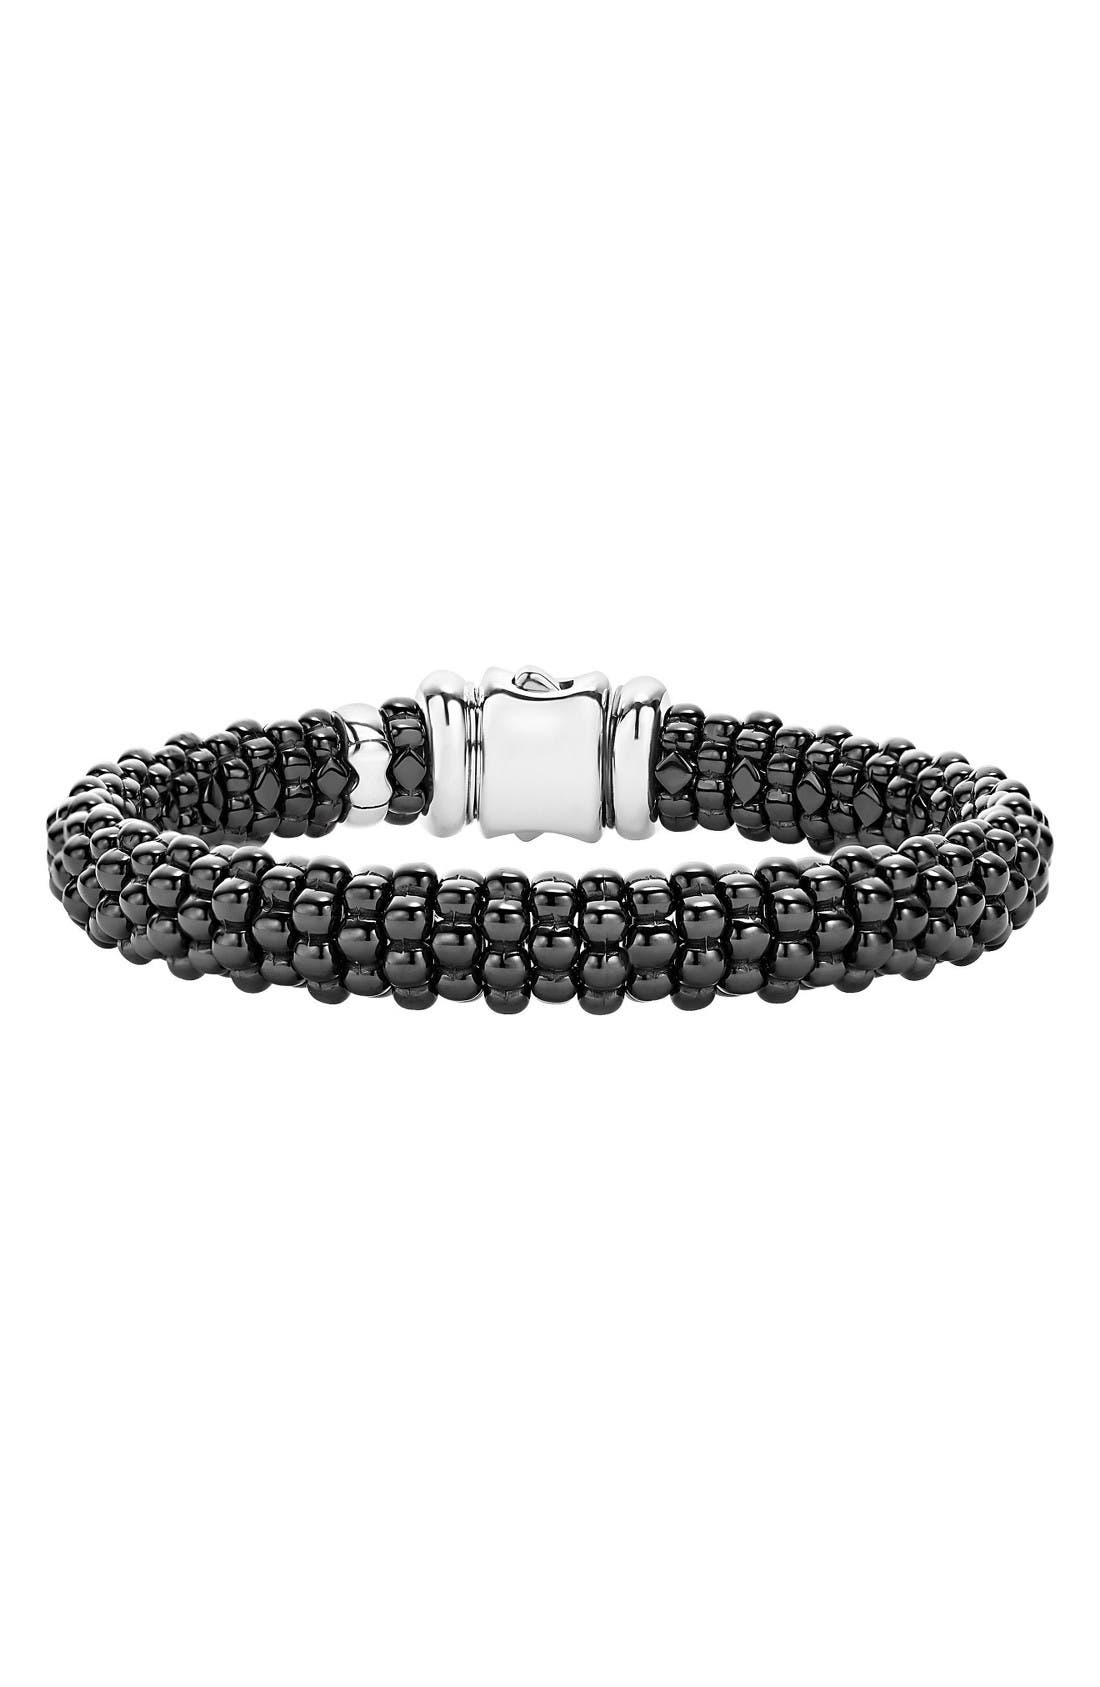 Alternate Image 1 Selected - LAGOS Black Caviar Bracelet